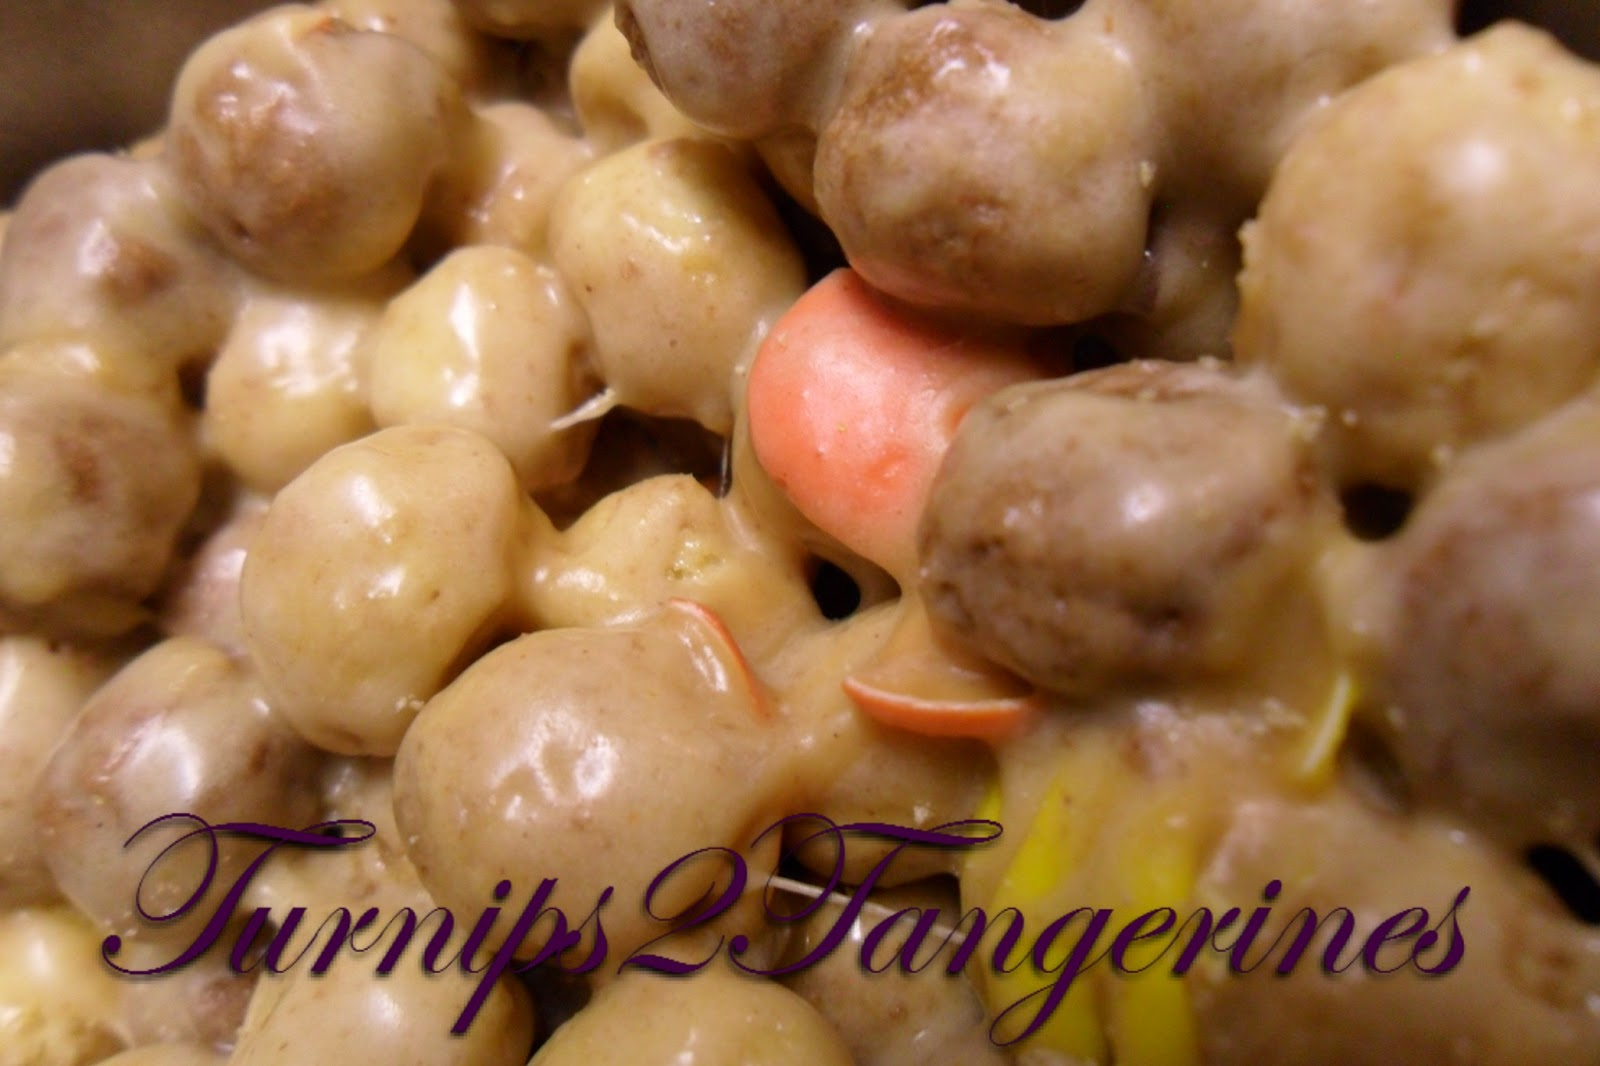 Turnips 2 Tangerines: Peanut Butter Crispy Treats